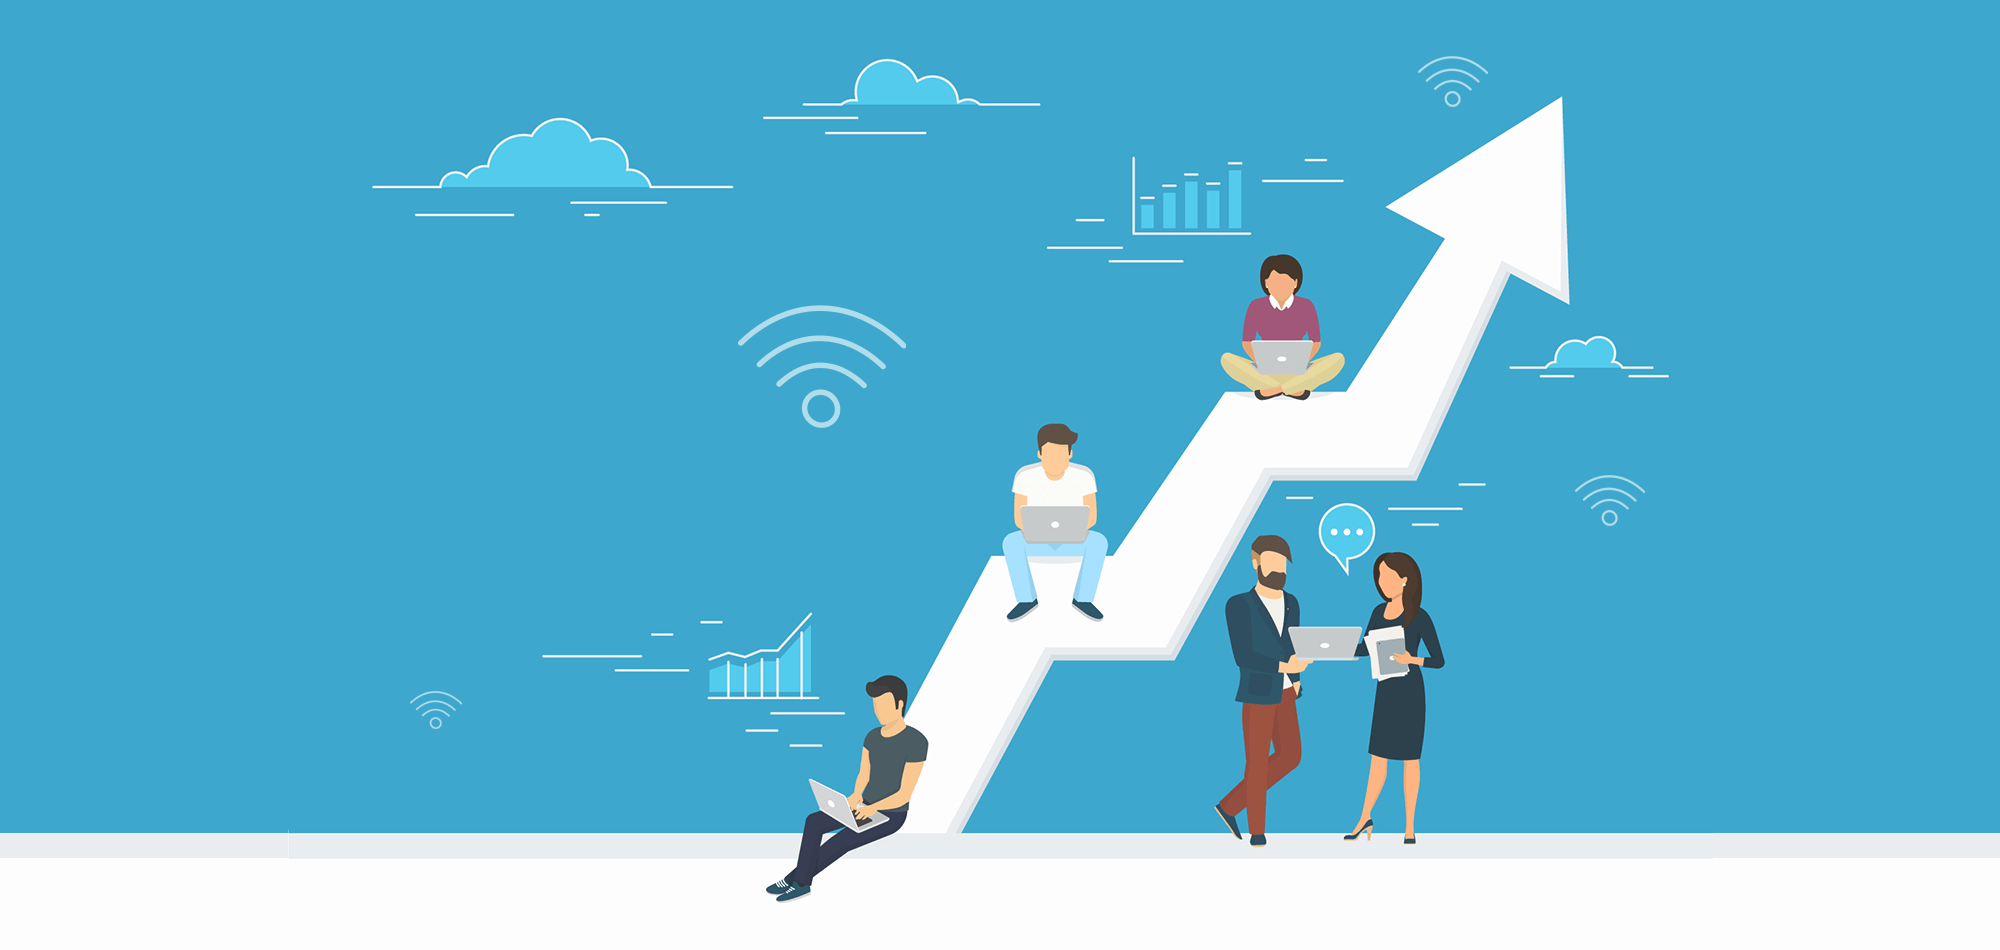 WiFi Planning: Preparing for Growth in a Mobile-First World